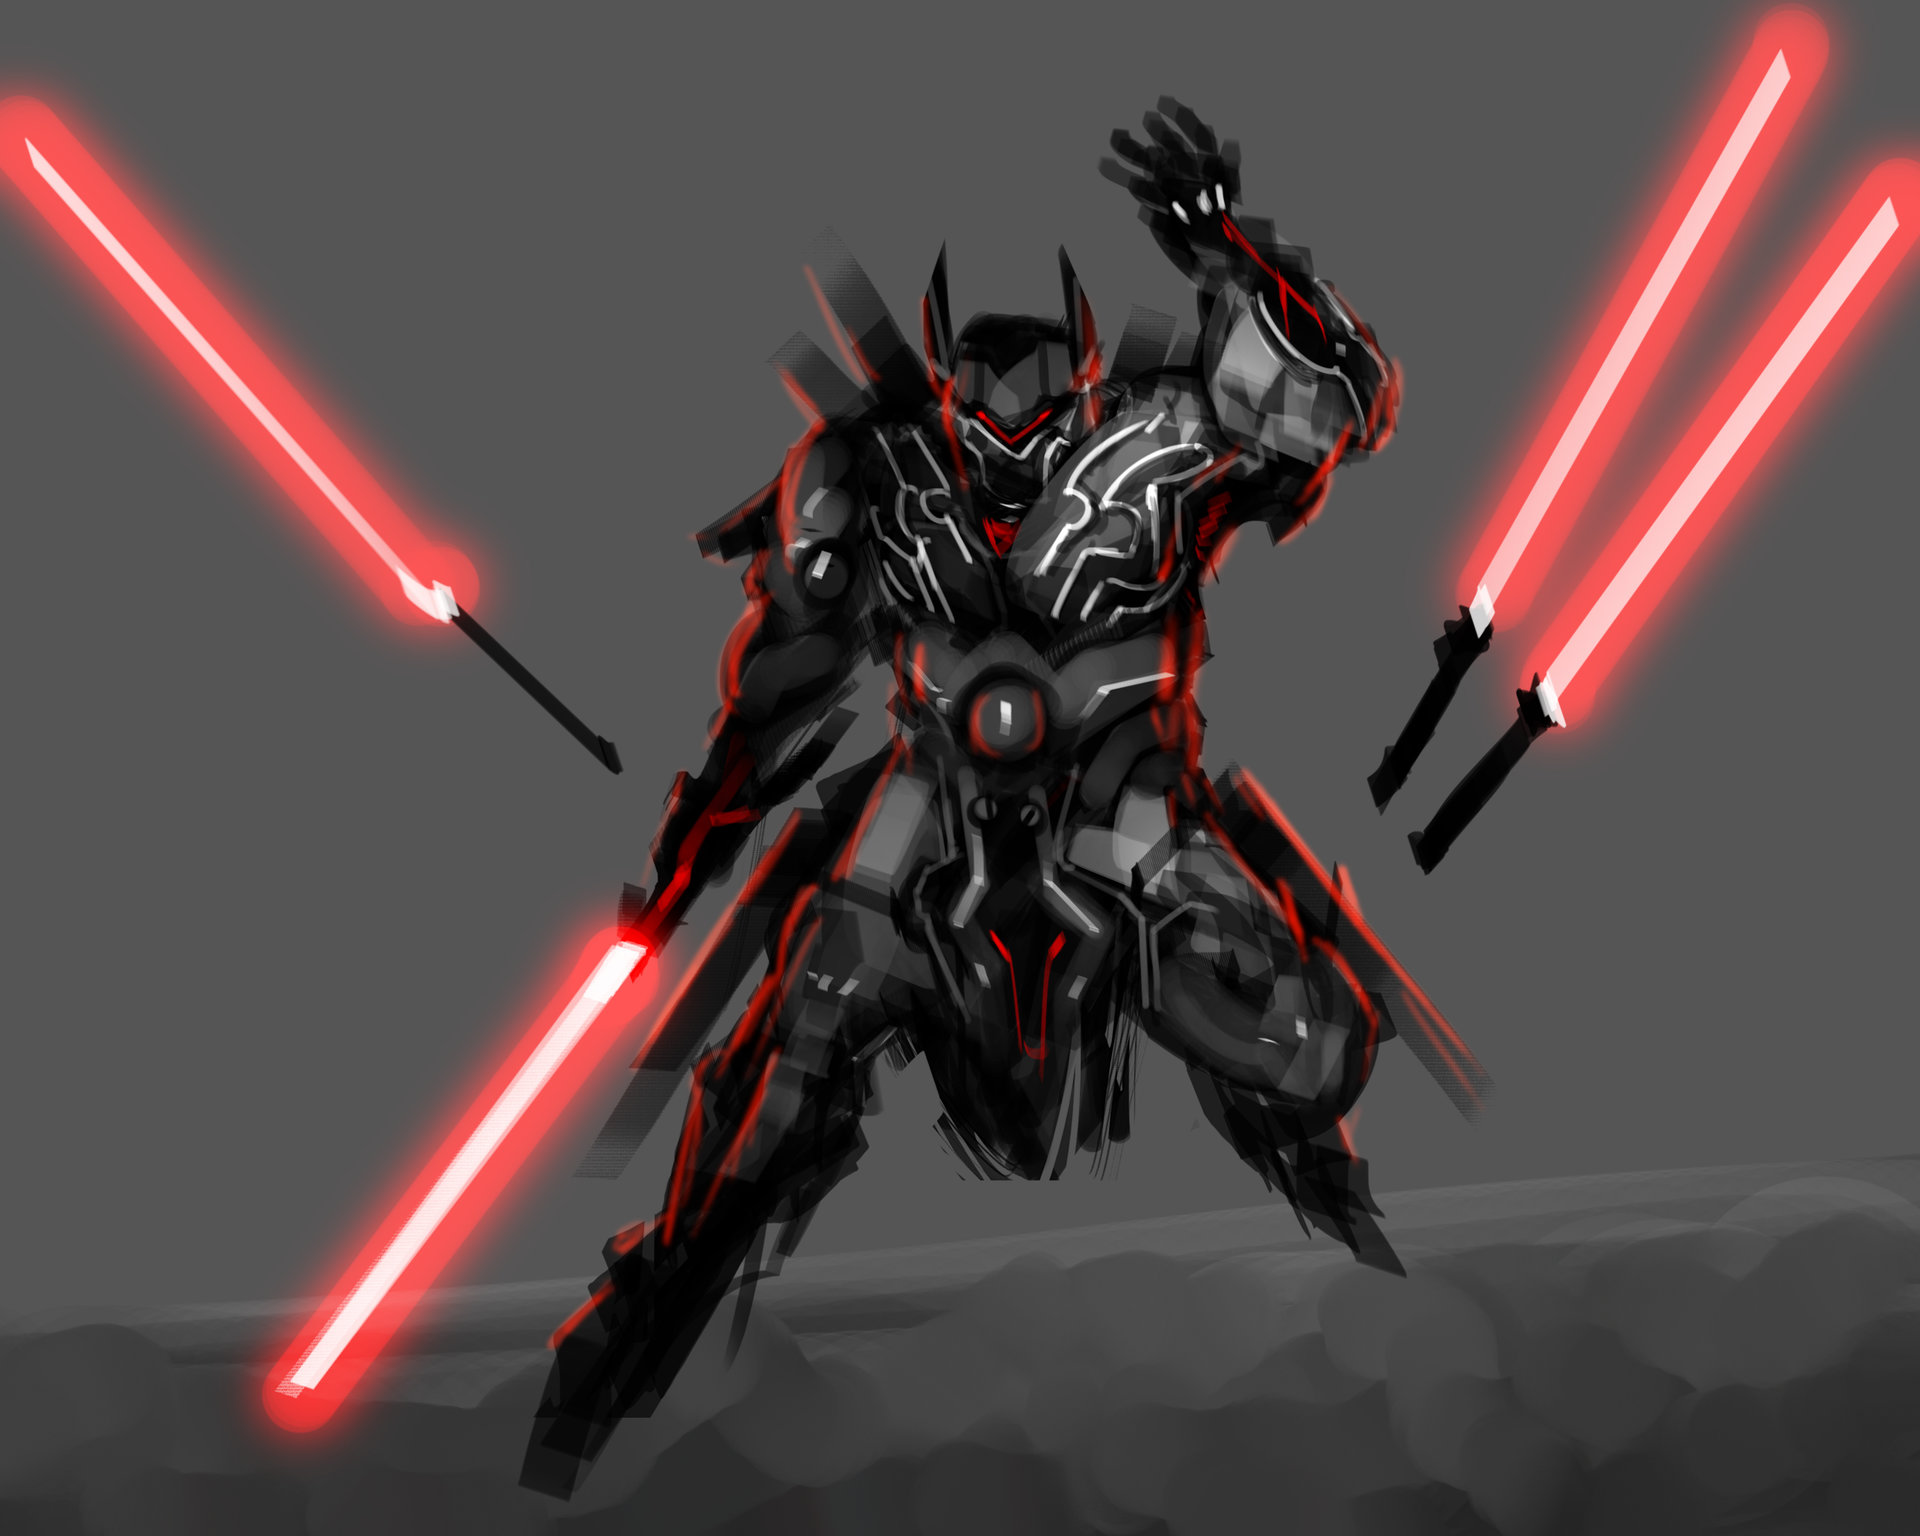 Star Wars Sith Character Concept Art